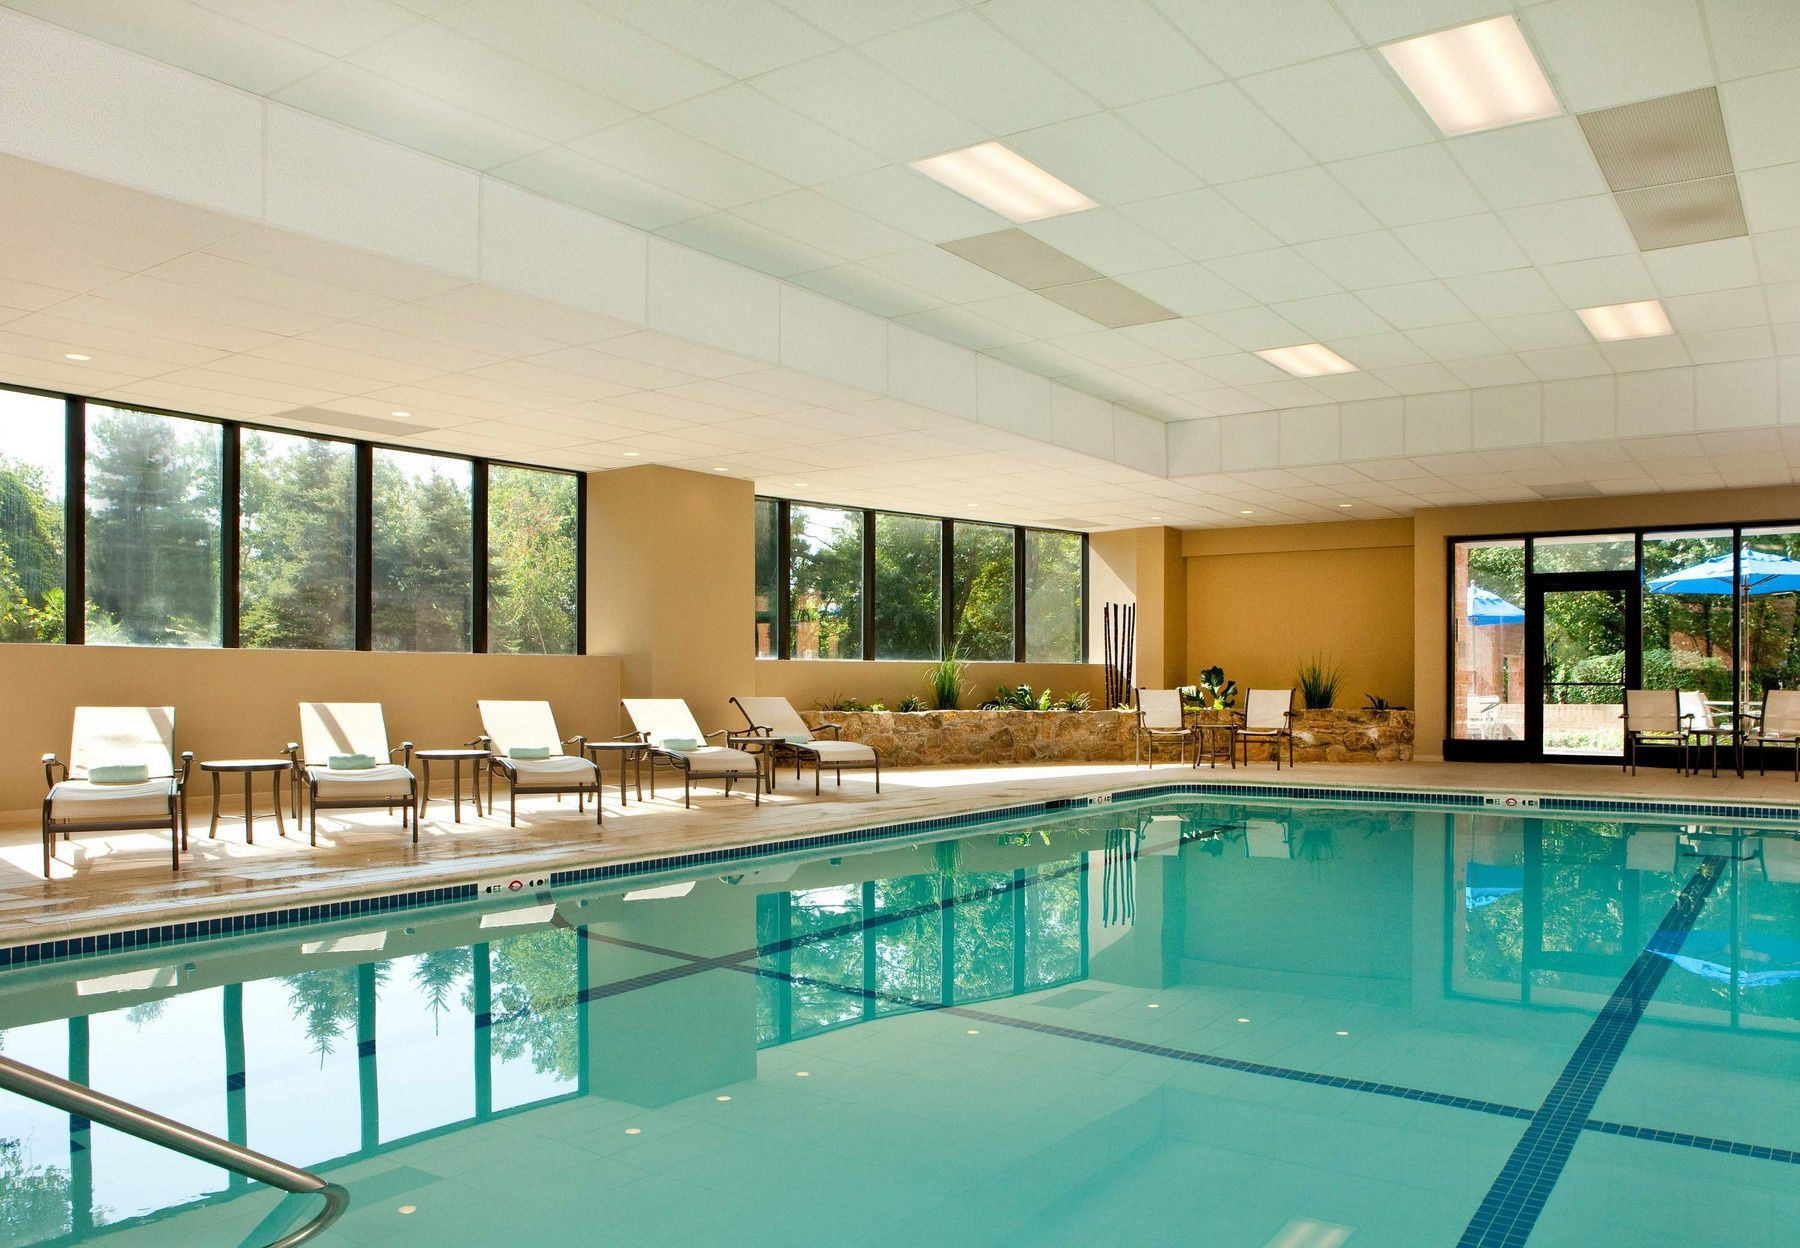 Indoor Swimming Pools 101 Cost Construction Advantages More Indoor Pool Design Indoor Swimming Pools Luxury Swimming Pools